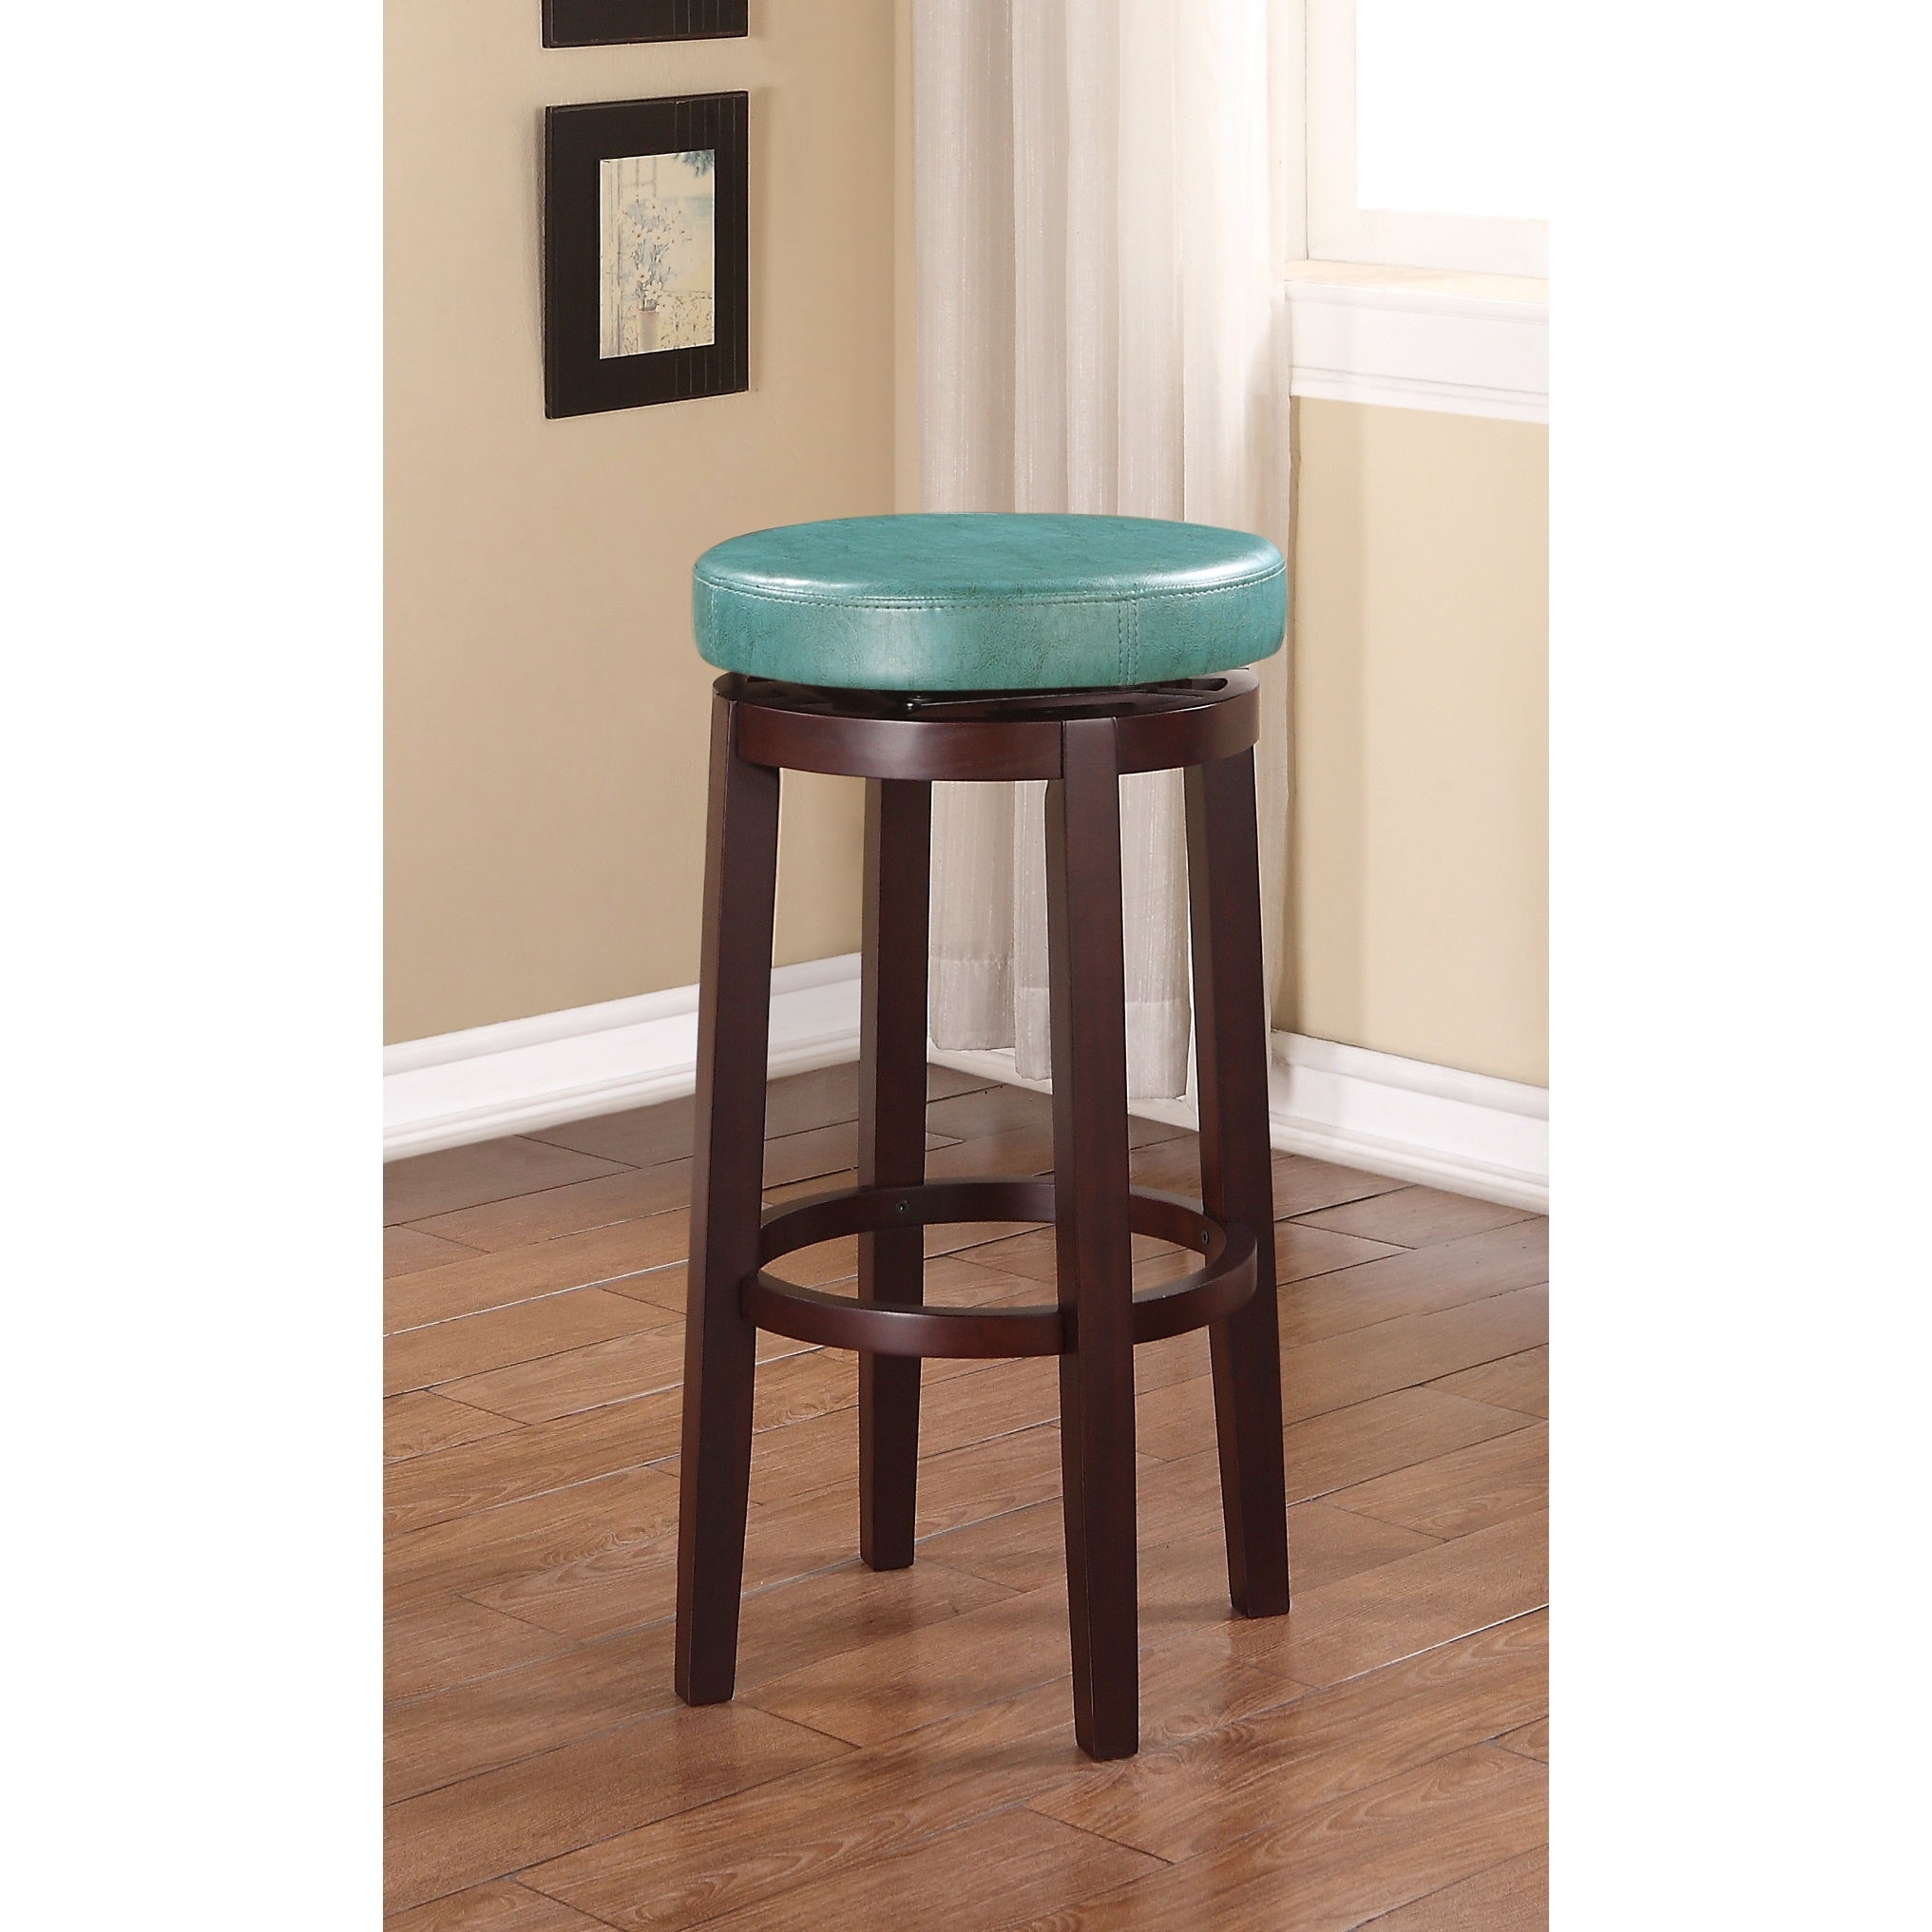 Linon Dorothy Aqua Blue Vinyl Backless Swivel Seat Bar Stool